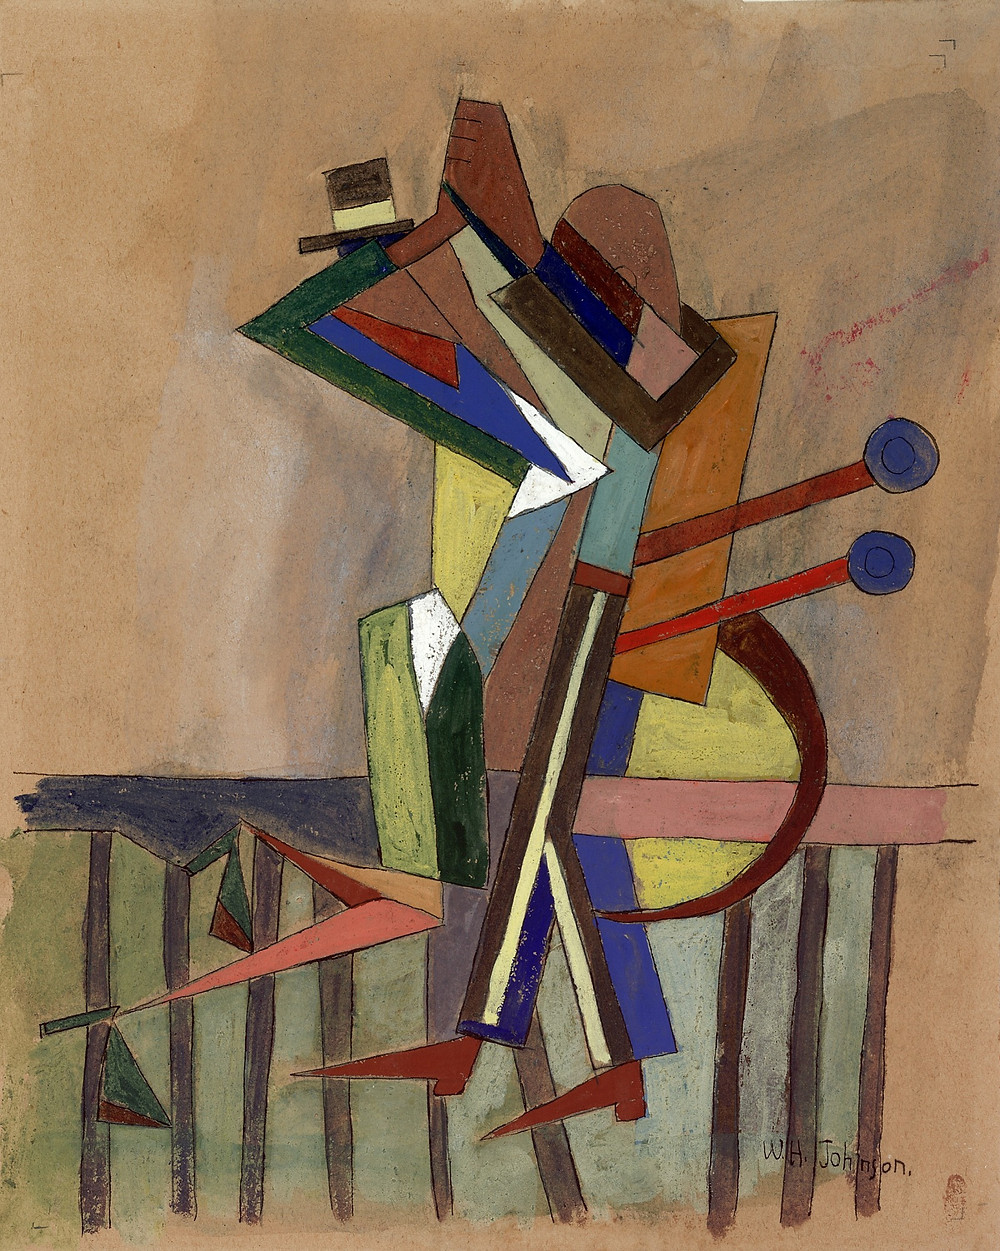 William H. Johnson, Jitterbugs (IV), ca. 1941, tempera and pen and ink with pencil on paper, Smithsonian American Art Museum, Gift of the Harmon Foundation, 1967.59.1090R-V